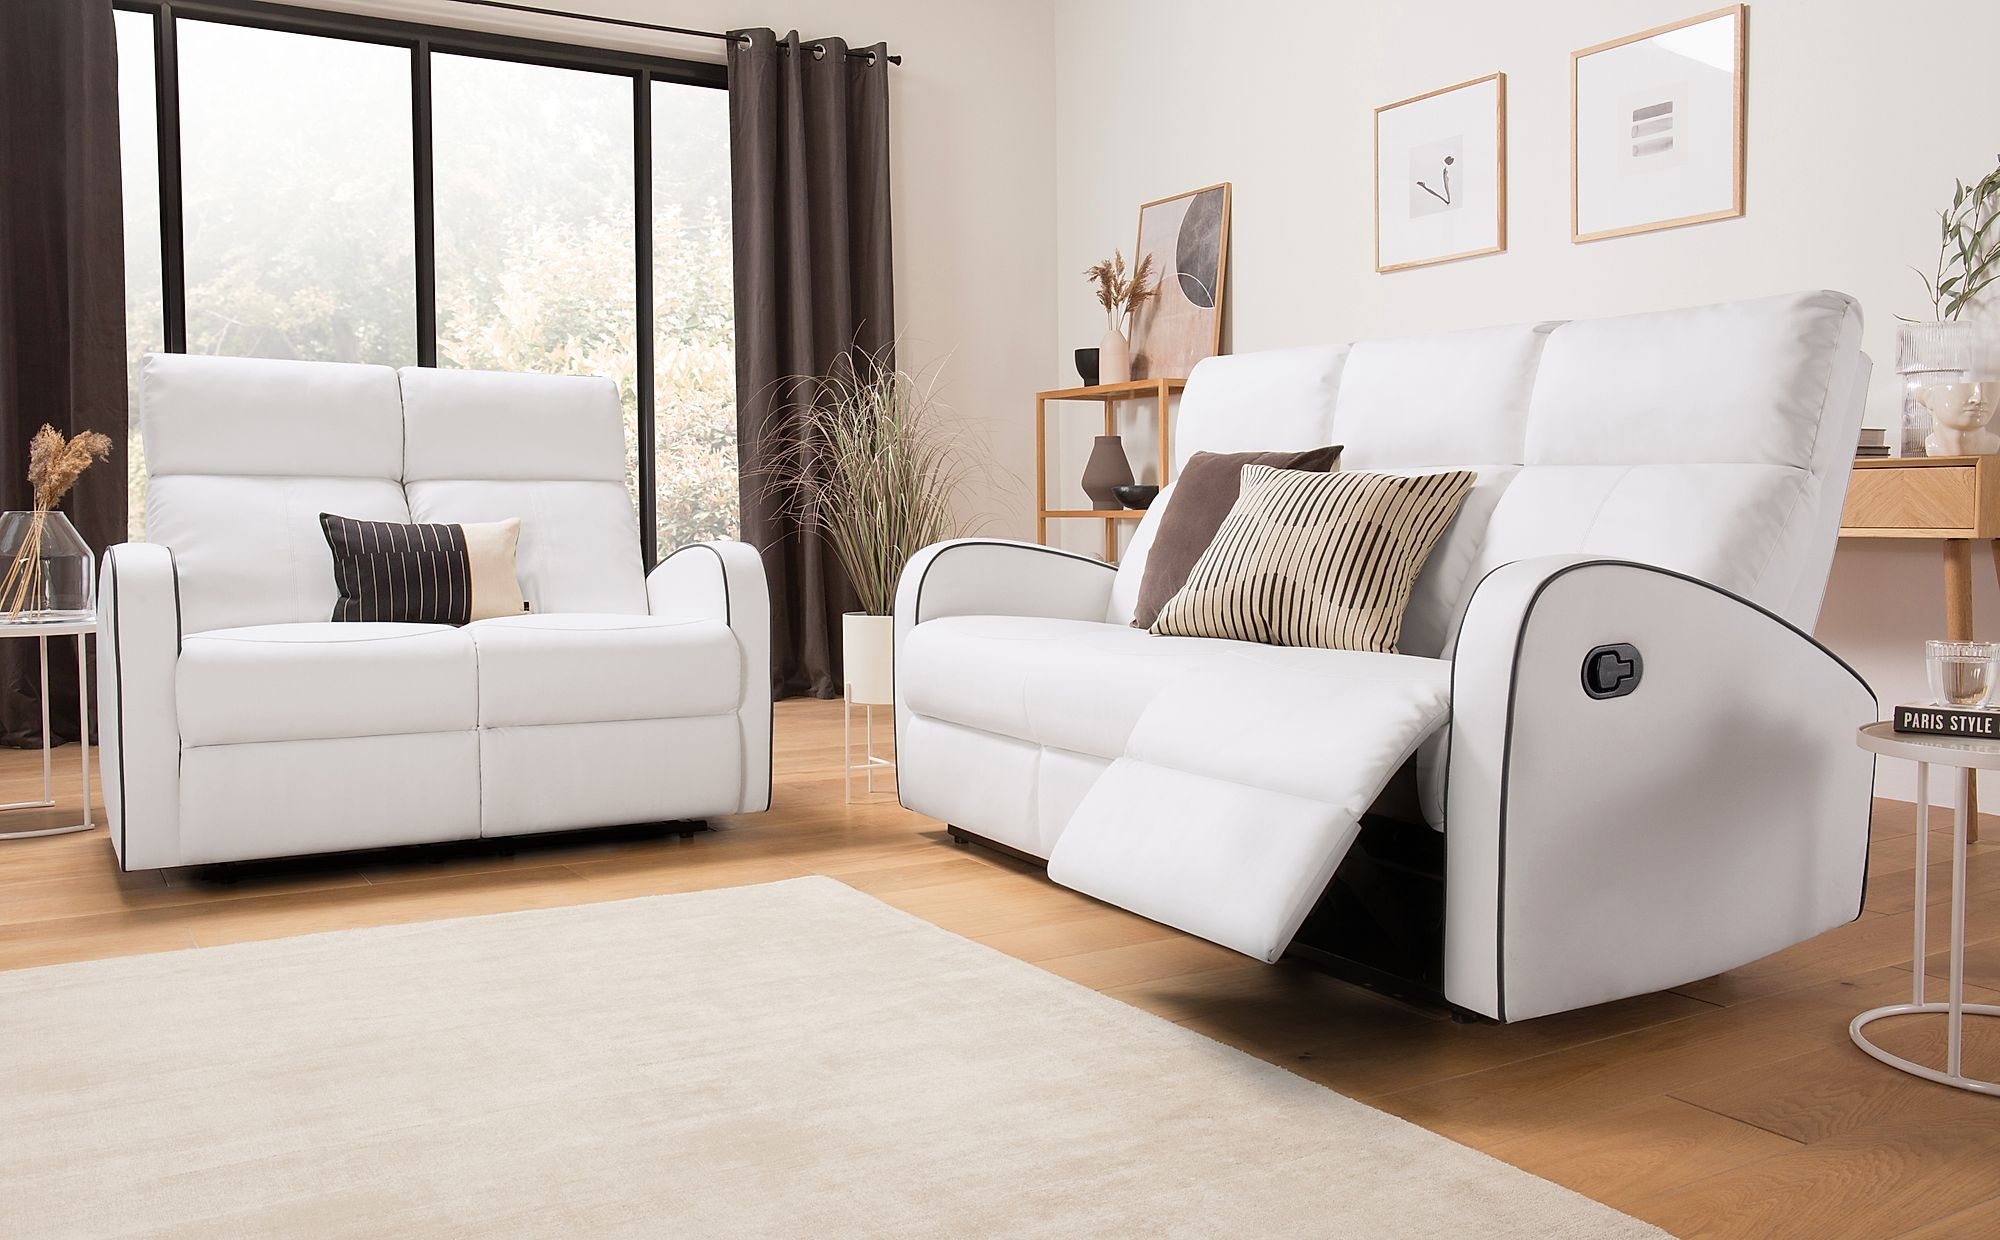 Ashby White Leather Recliner Sofa 3+2 Seater ...